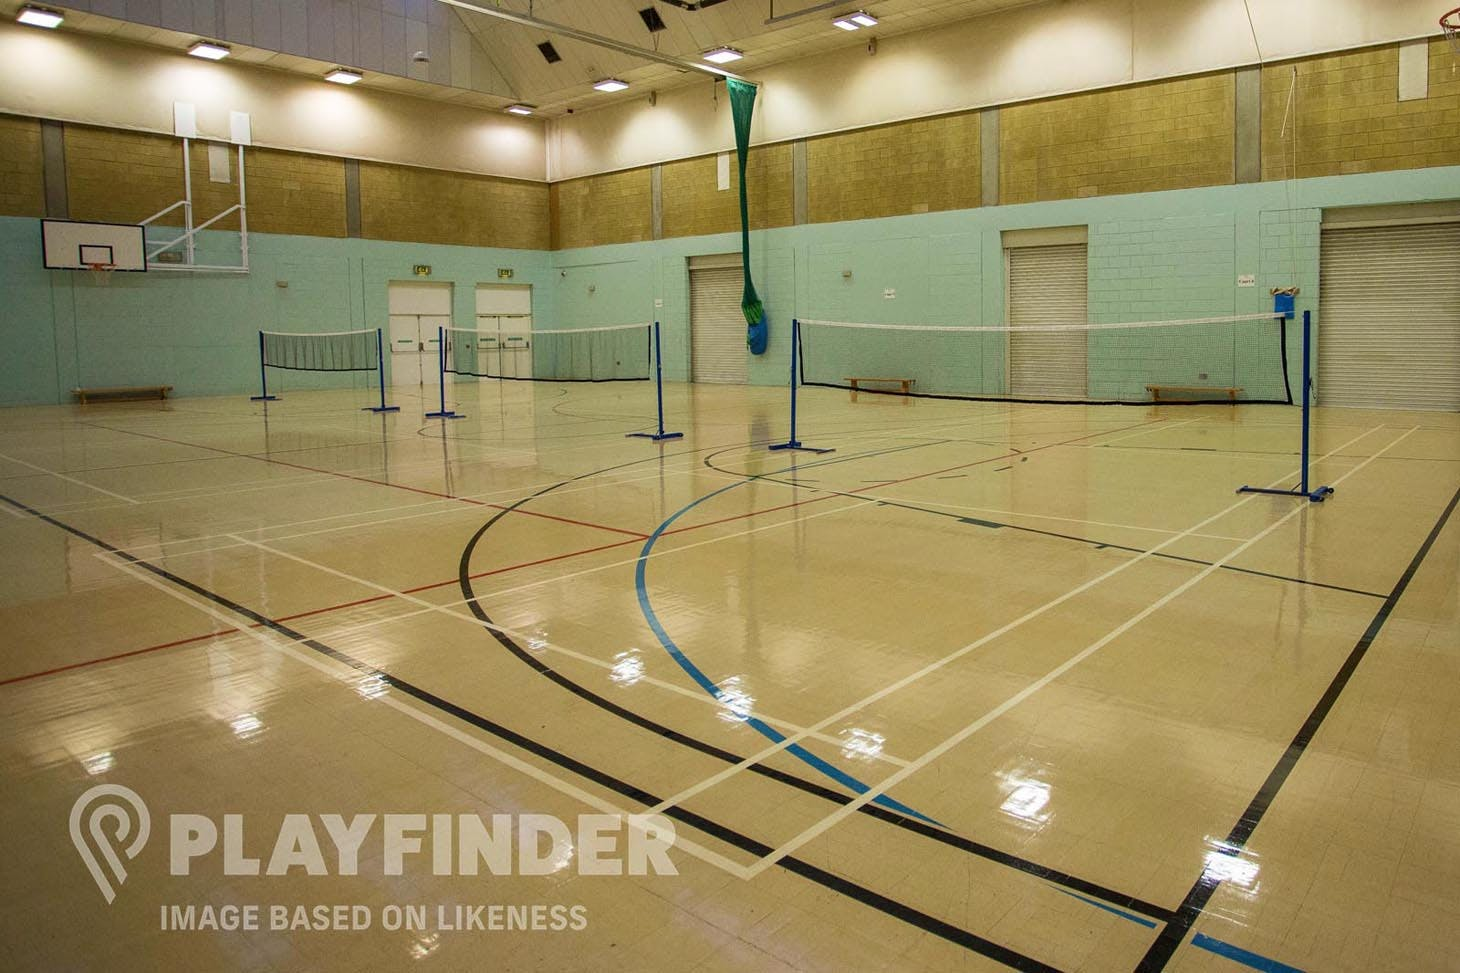 Kensington Aldridge Academy Indoor | Hard badminton court